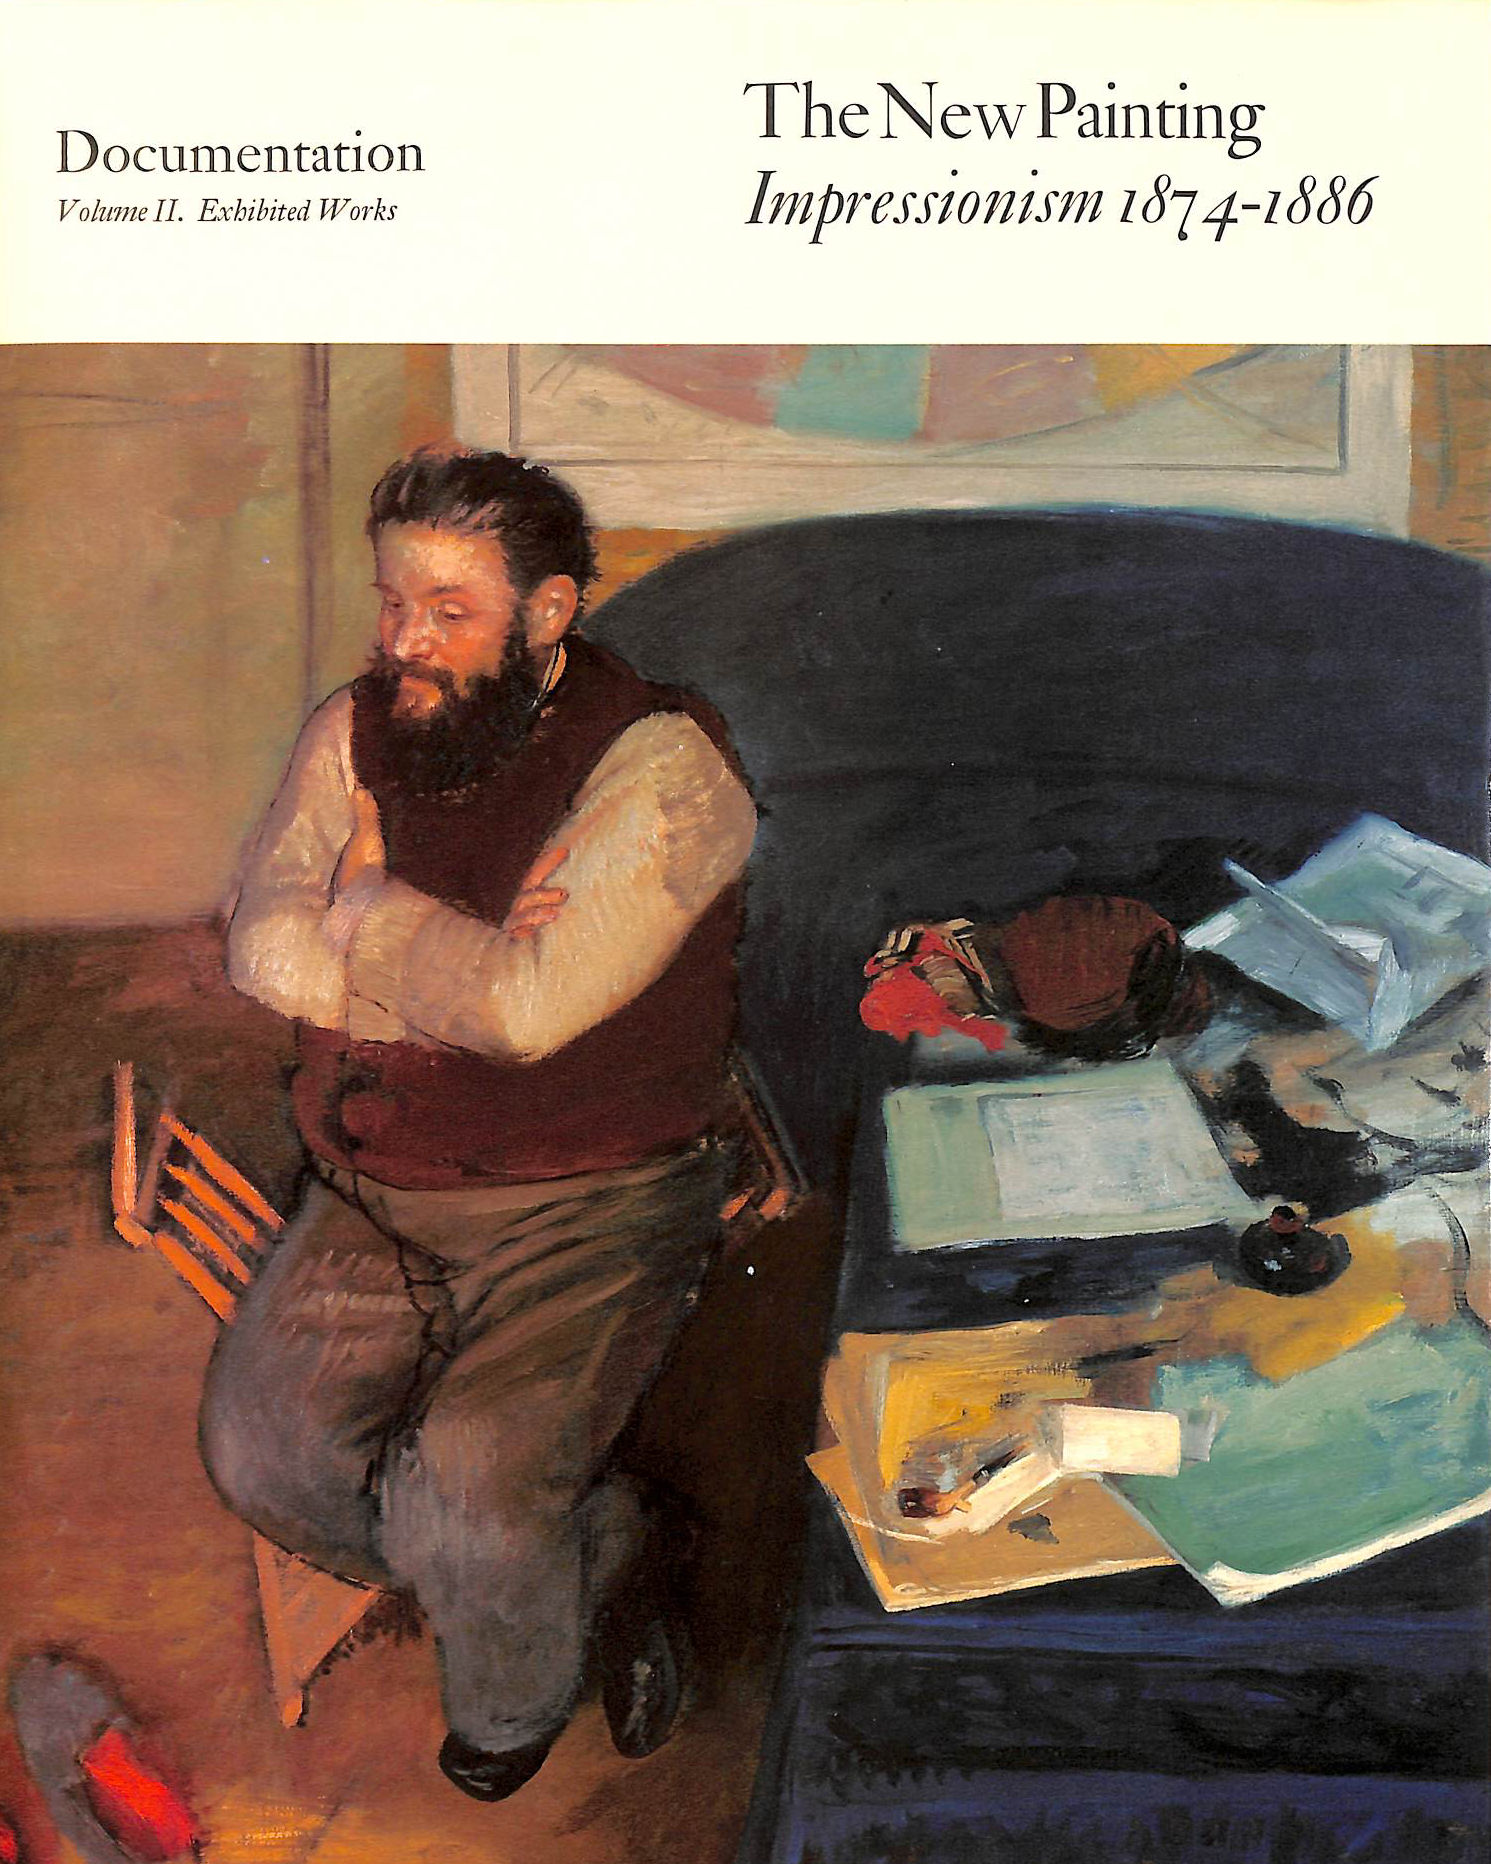 Image for The New Painting Documentation: Impressionism 1874-1886